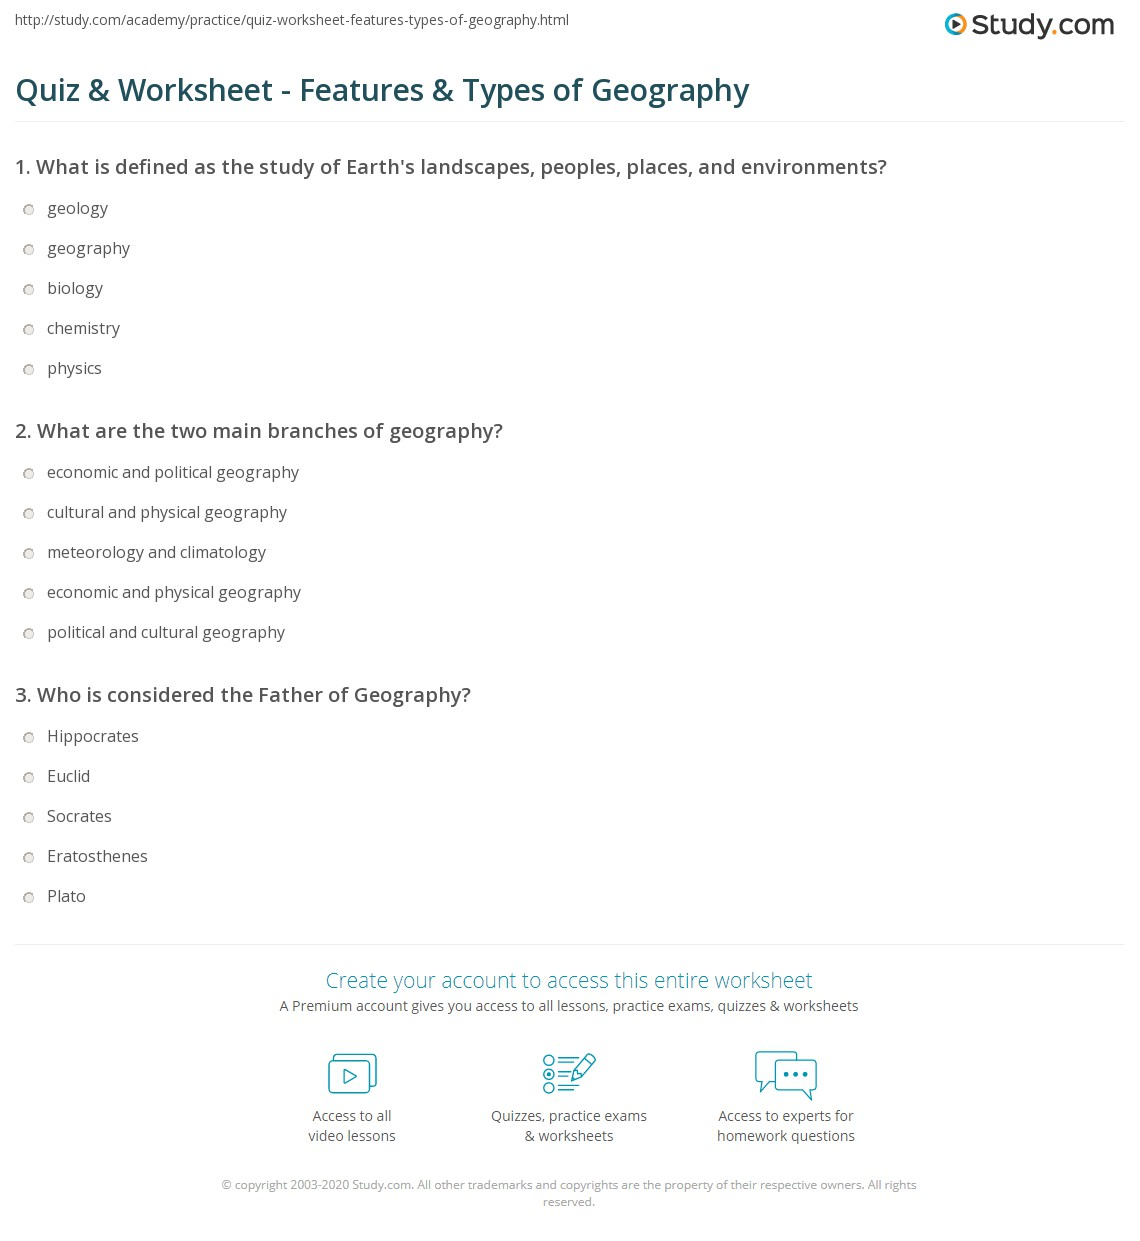 Quiz W Ksheet Fe Tures Types Of Geogr Phy Study